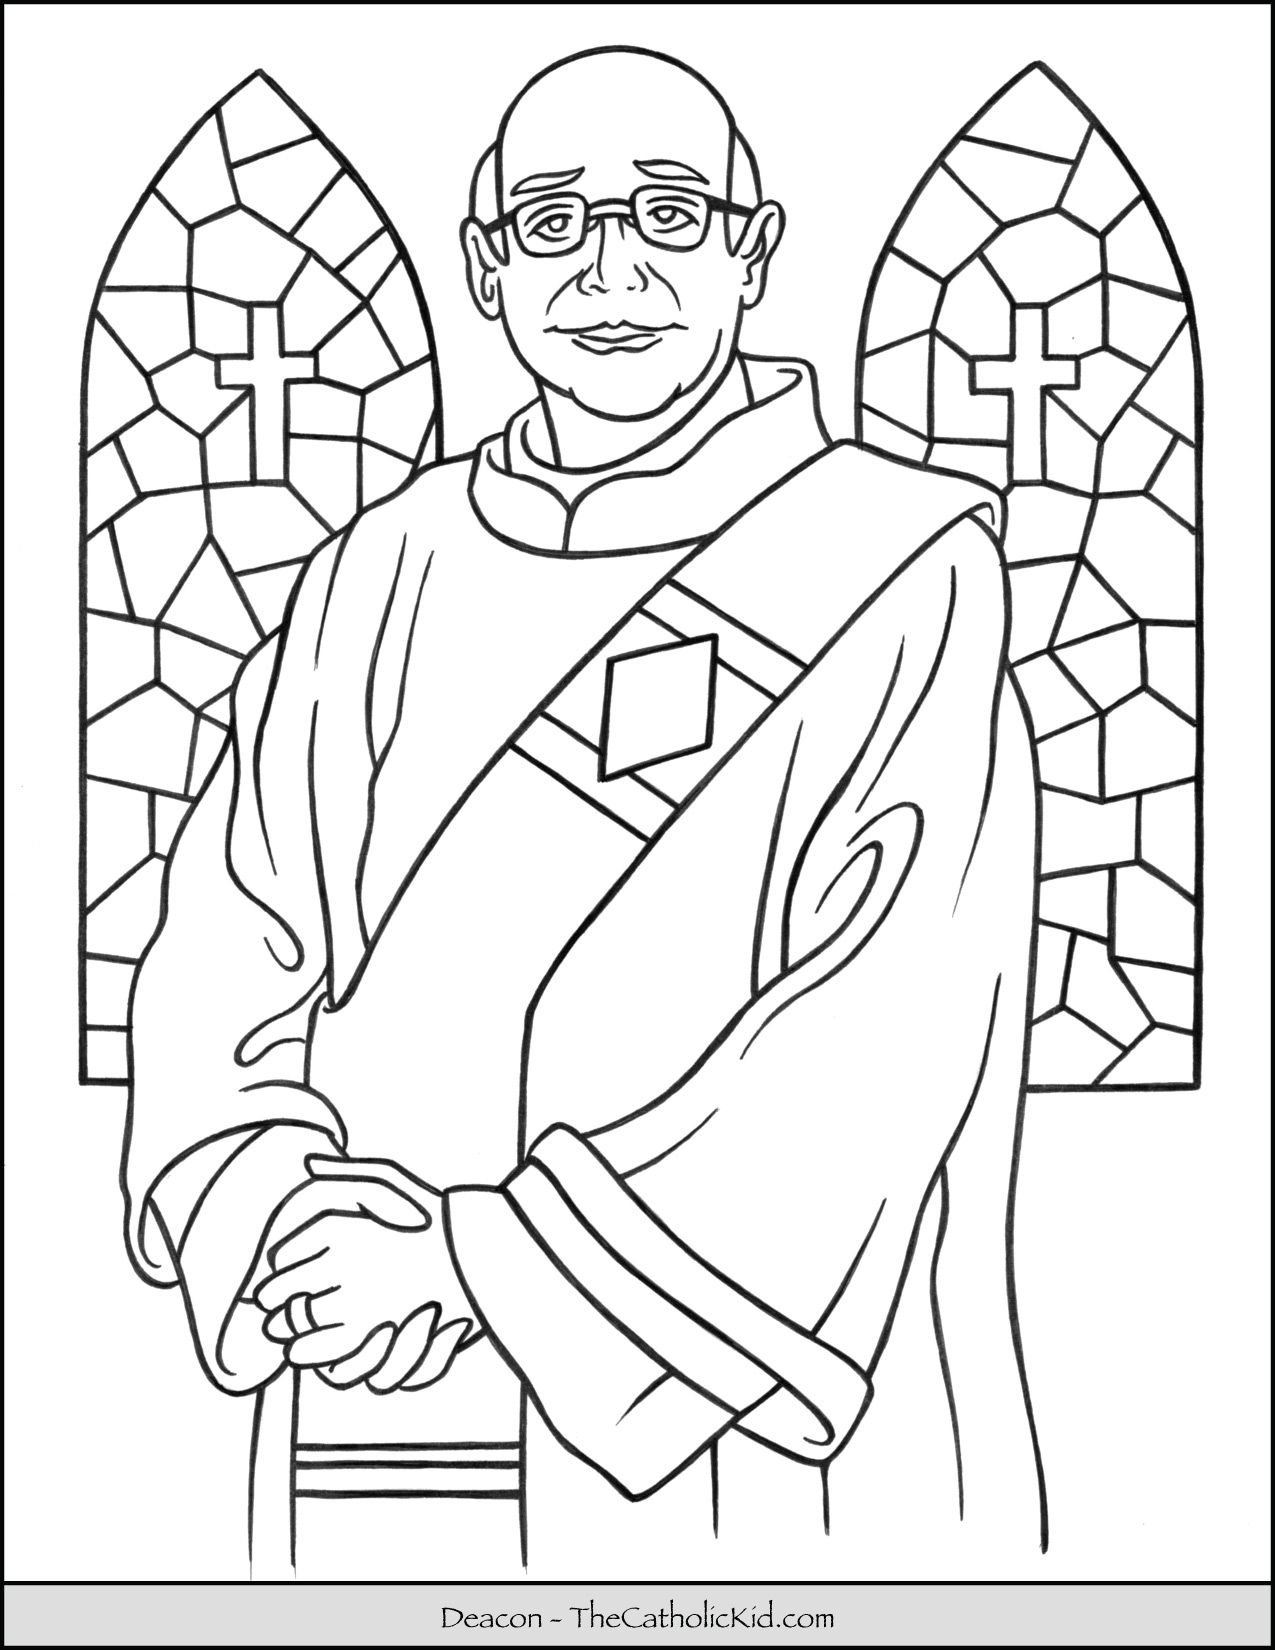 Catholic Deacon Coloring Page Thecatholickid Com Catholic Deacon Coloring Pages Catholic Coloring